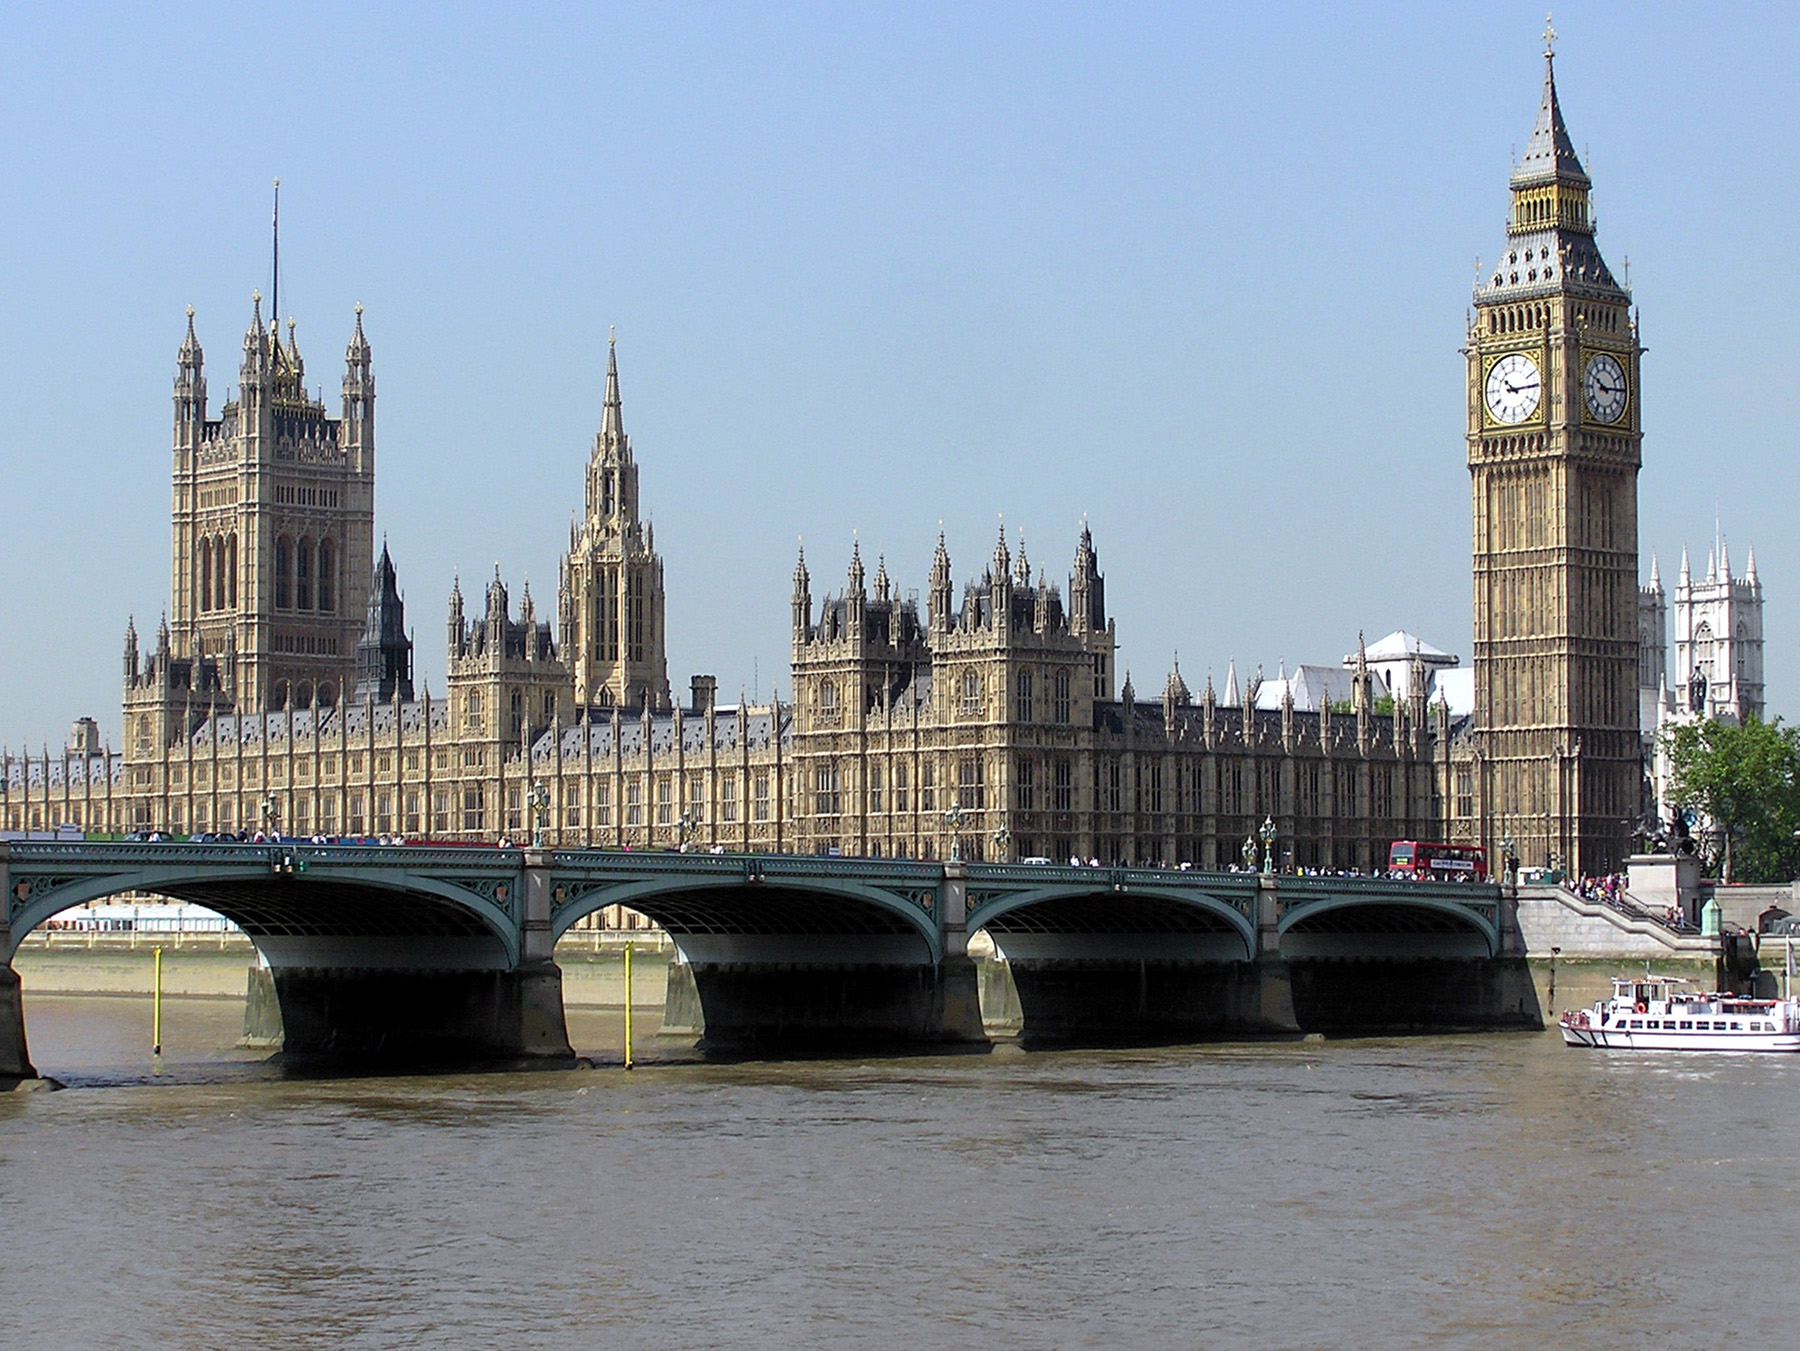 Londen, Houses of Parliament met de Big Ben